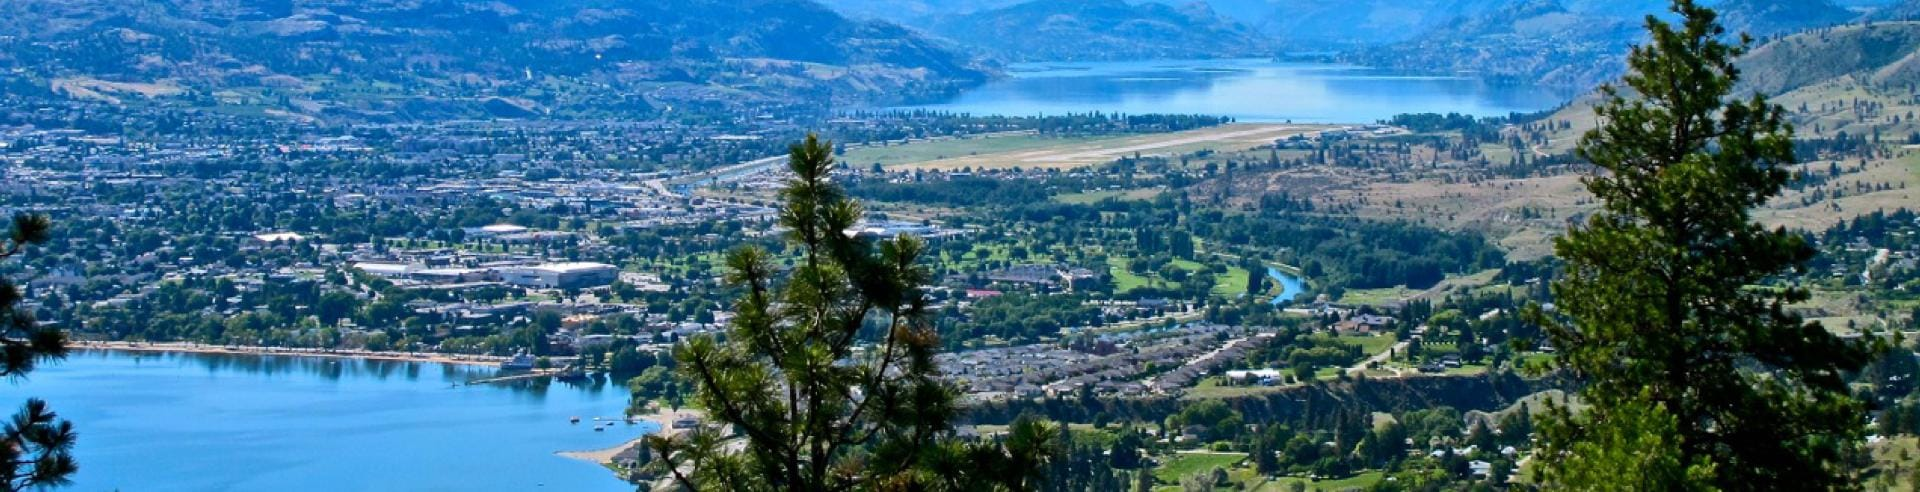 Penticton Viewpoint North to South